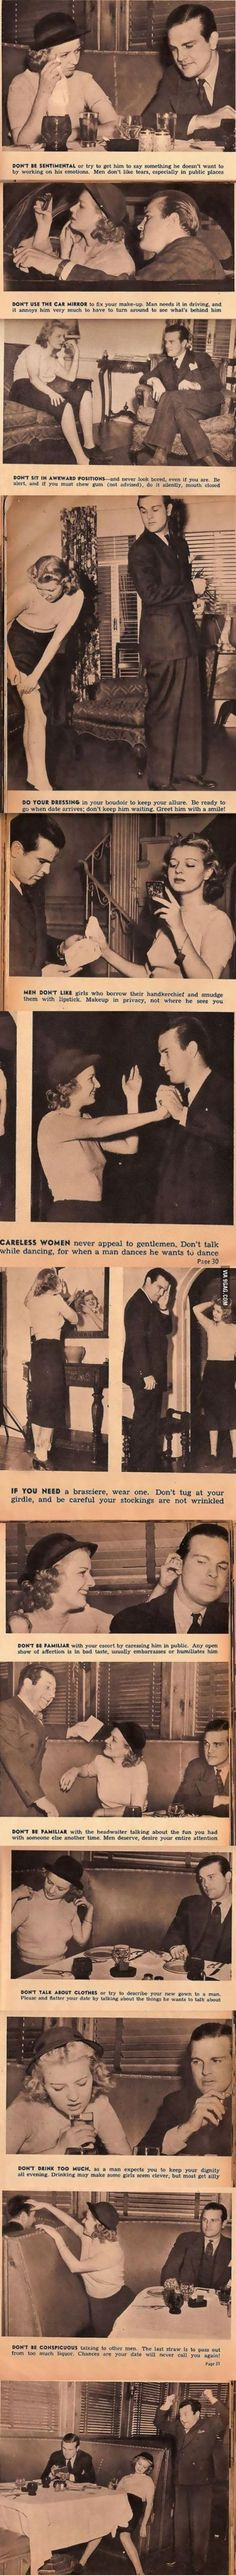 13 hilarious dating tips from 1938